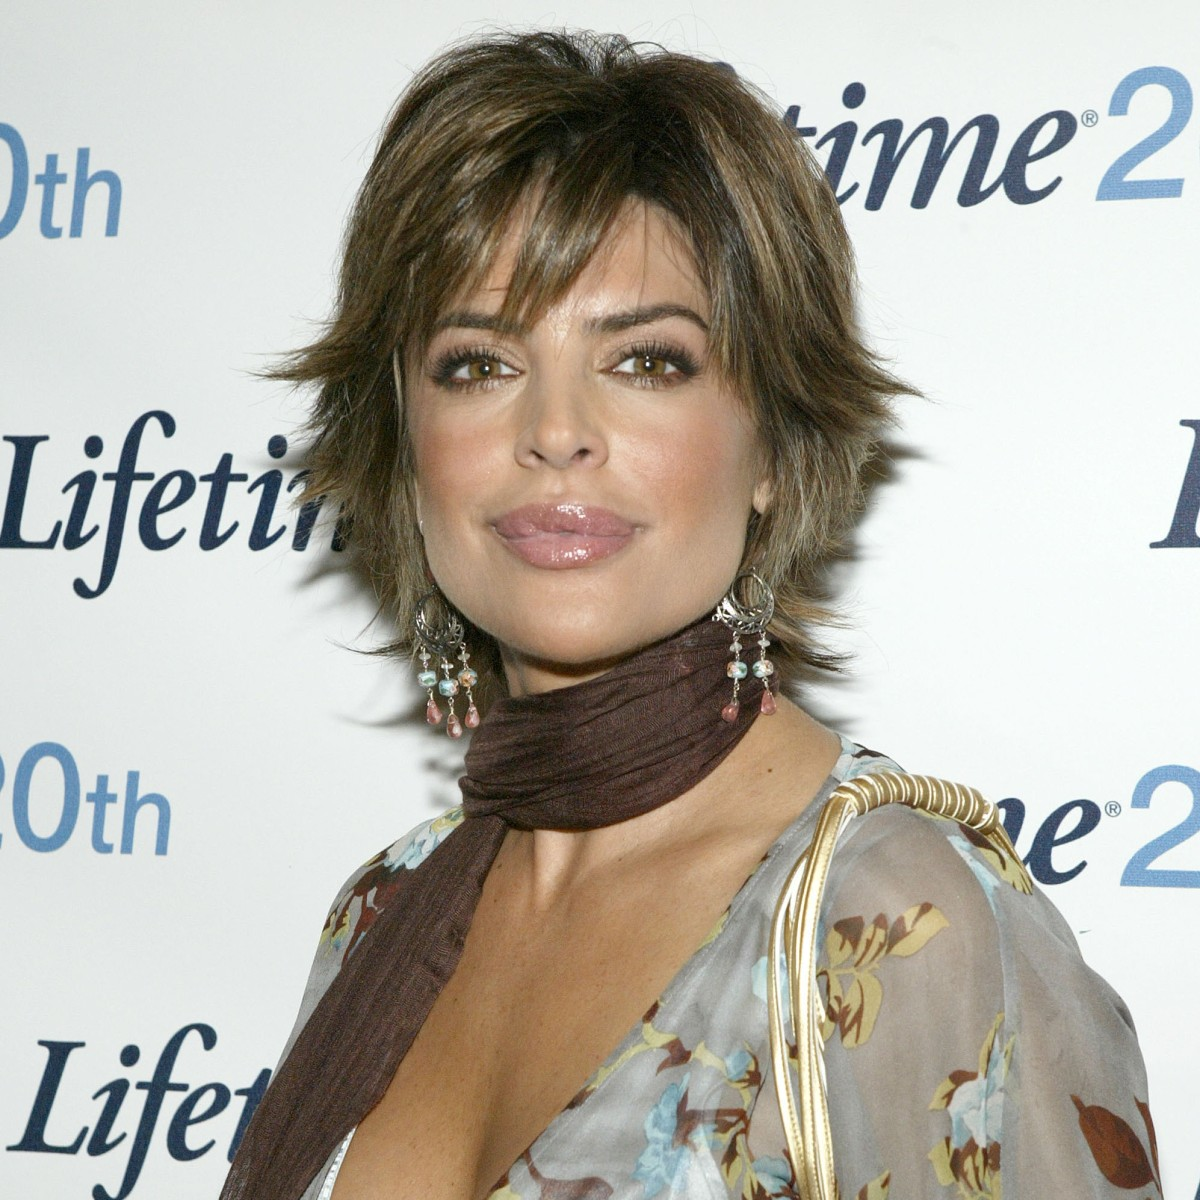 lisa rinna denies getting more plastic surgery after opening